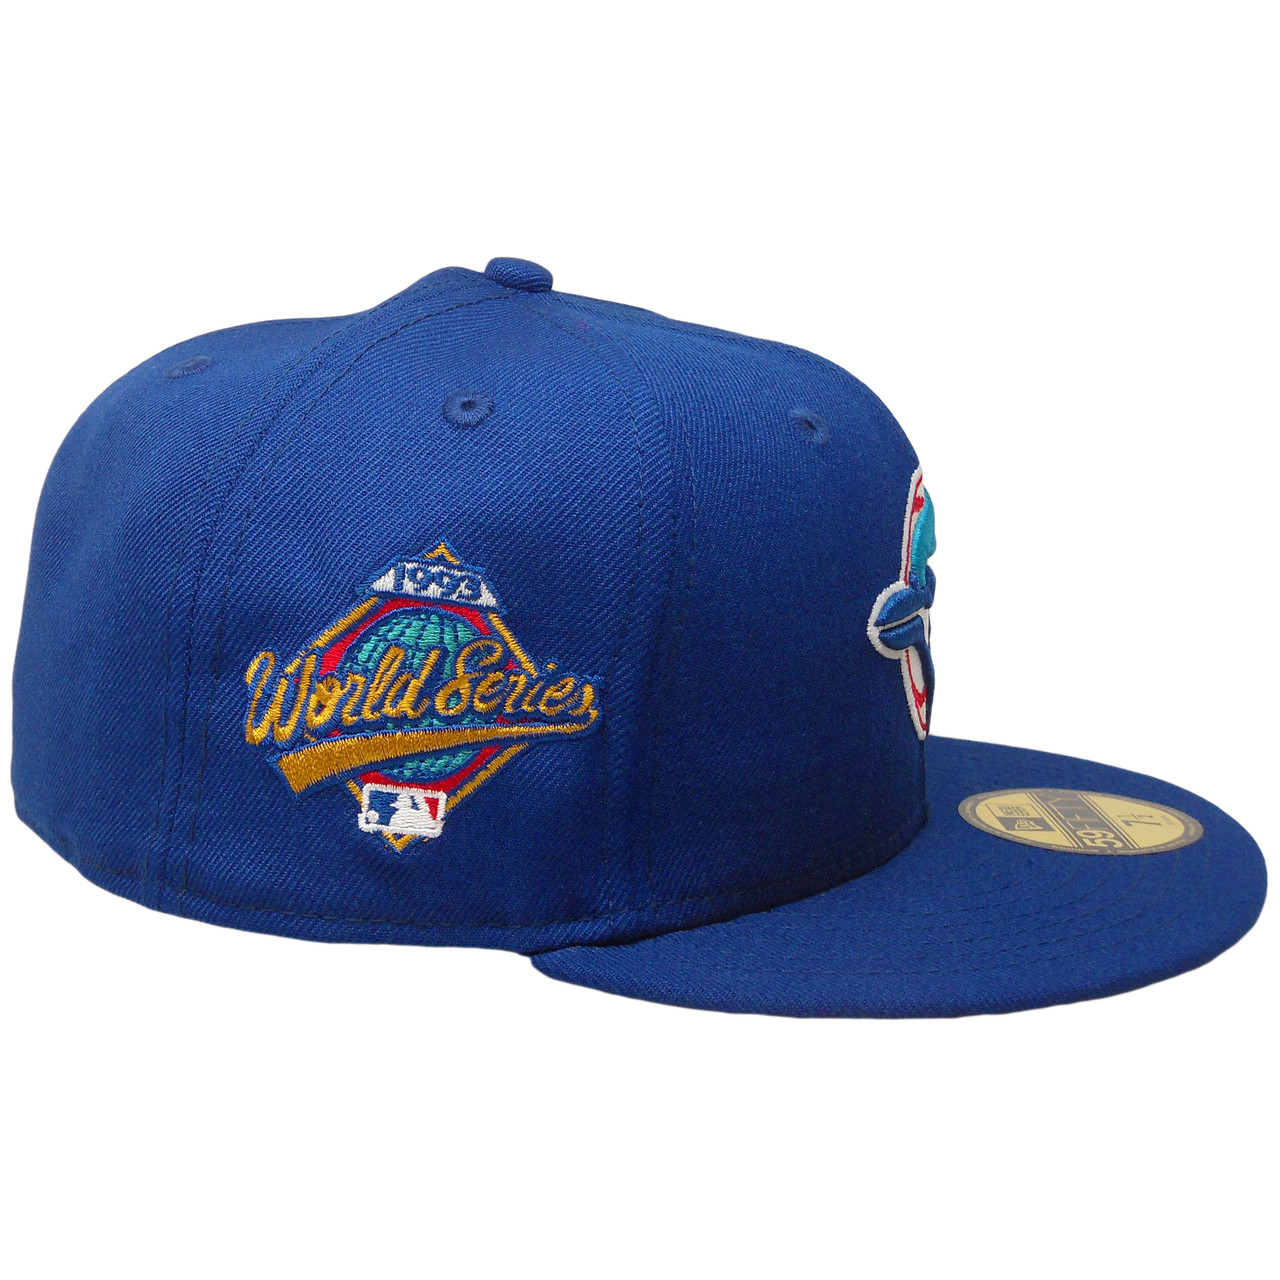 Toronto Blue Jays New Era Custom 59Fifty Fitted Hat - Blue 42e61d7a76f8